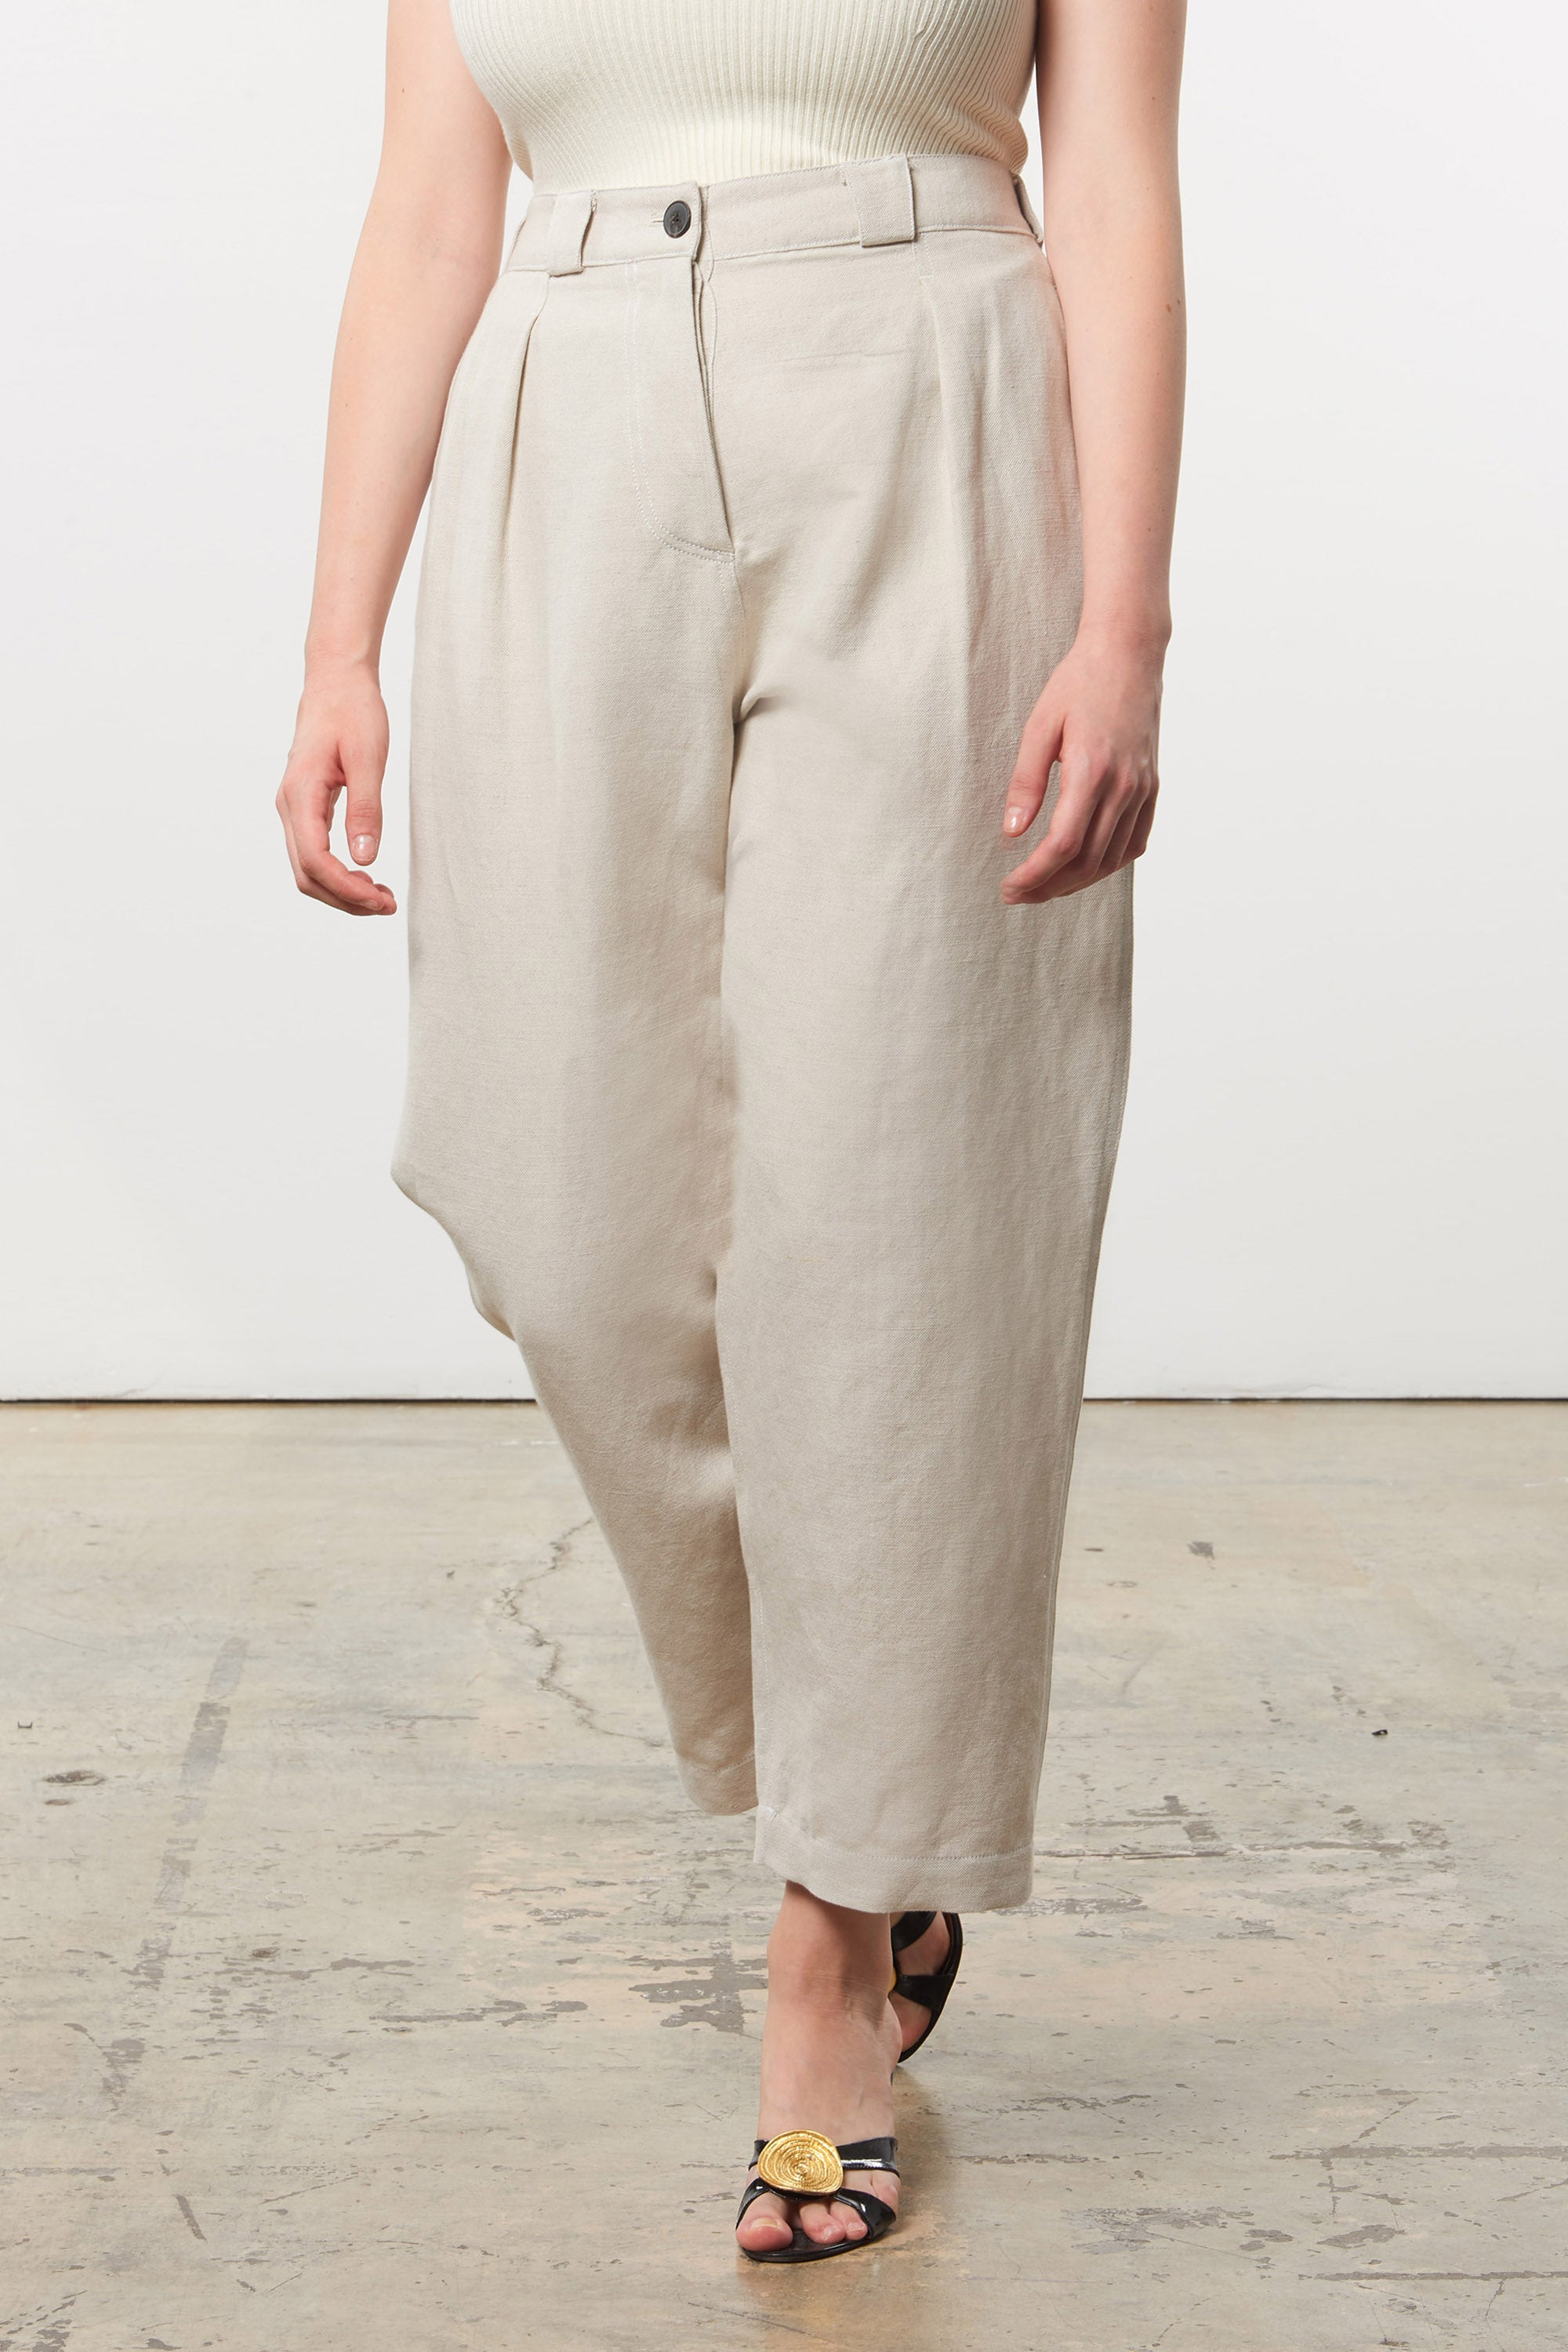 Mara Hoffman Extended Beige Jade Pant in linen and organic cotton (front detail)